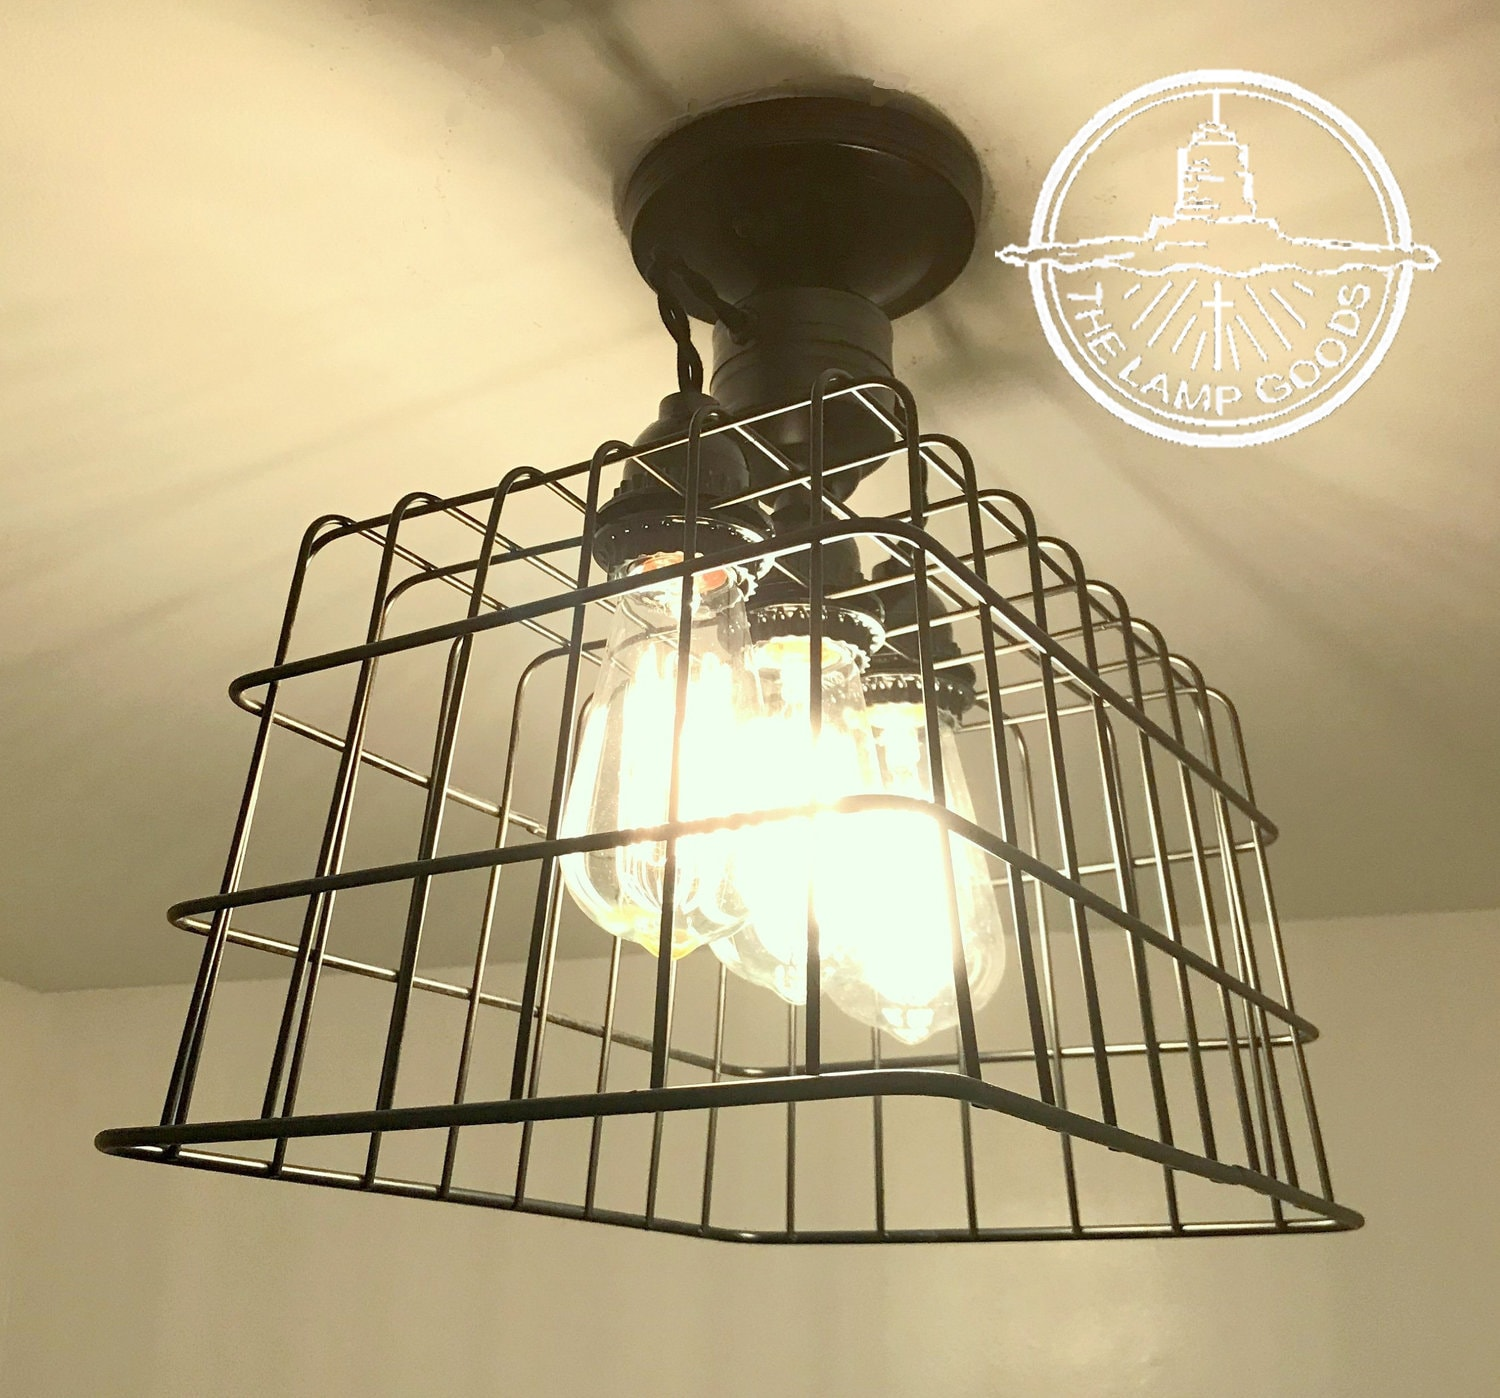 Flush mount ceiling light basket with edison bulbs lighting fixture farmhouse chandelier kitchen edison bulb lamp goods